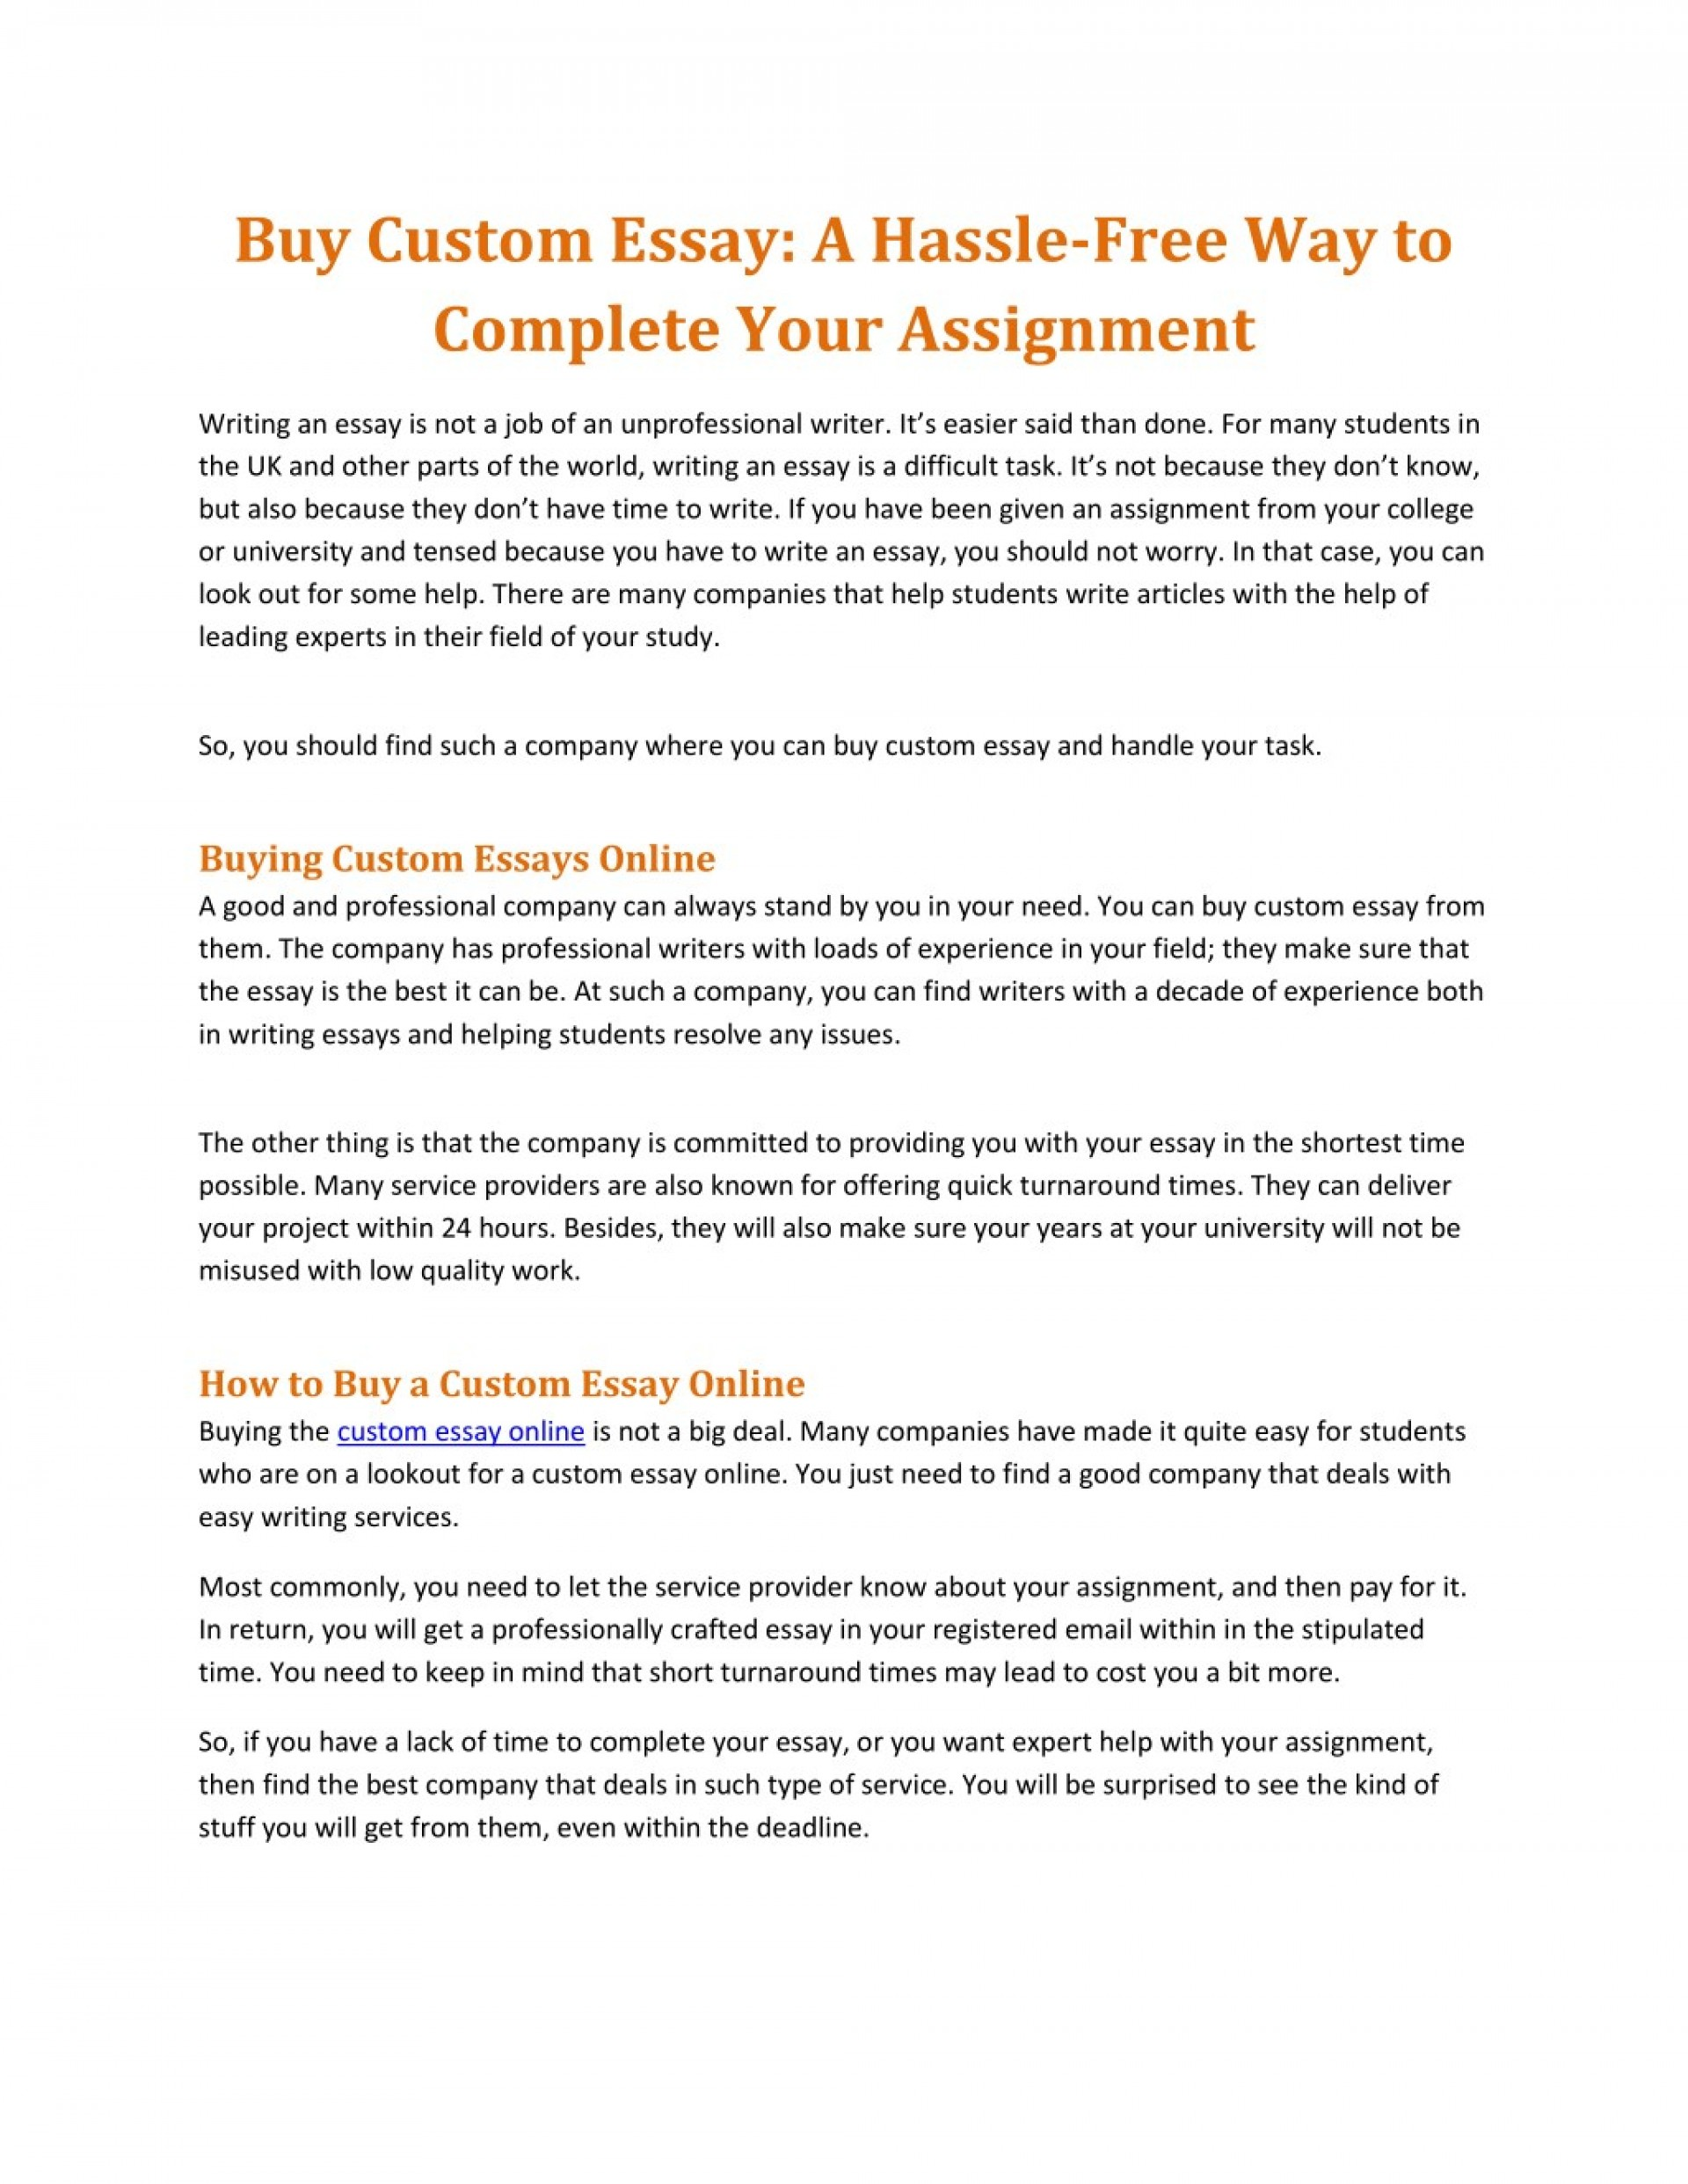 012 Buy Custom Essay Hassle Free Way To Complete L Writing Awesome Writers Uk Service Australia 1920